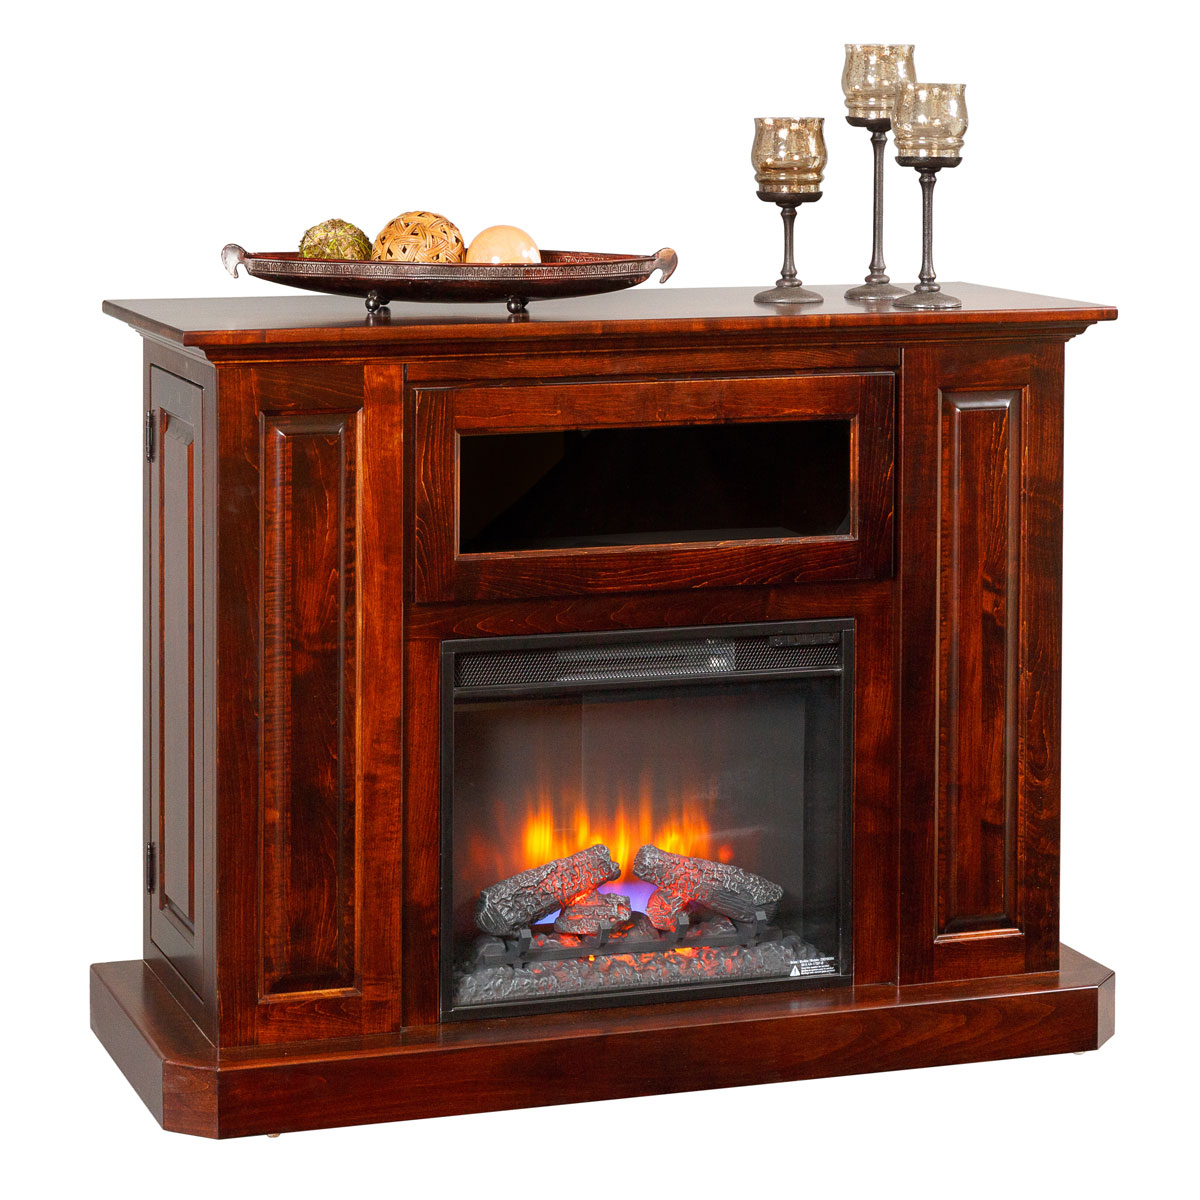 Deluxe Fireplace Entertainment Center Amish Furniture Connections Amish Furniture Connections